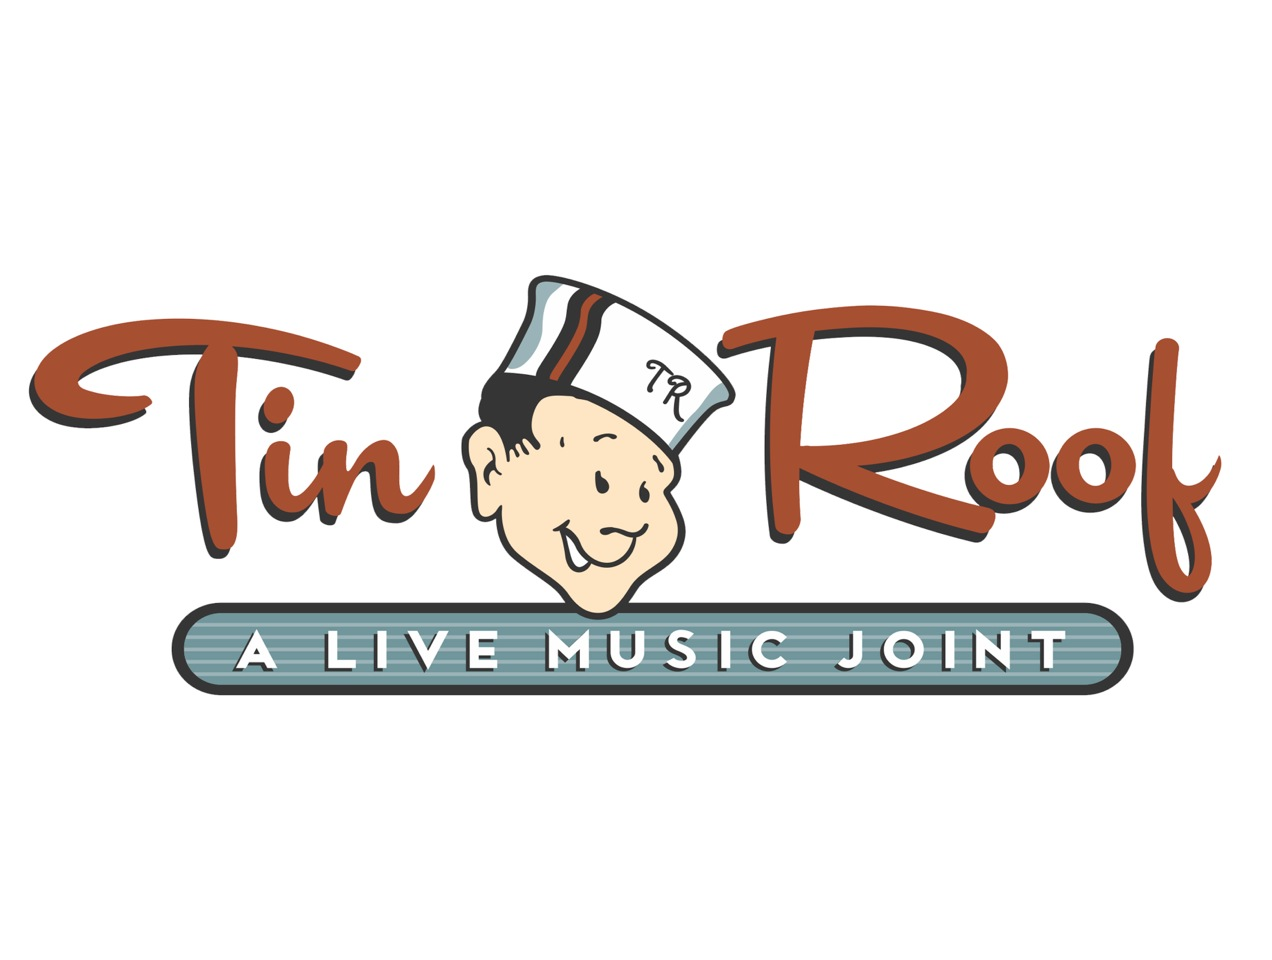 Tin-Roof gaslamp san diego